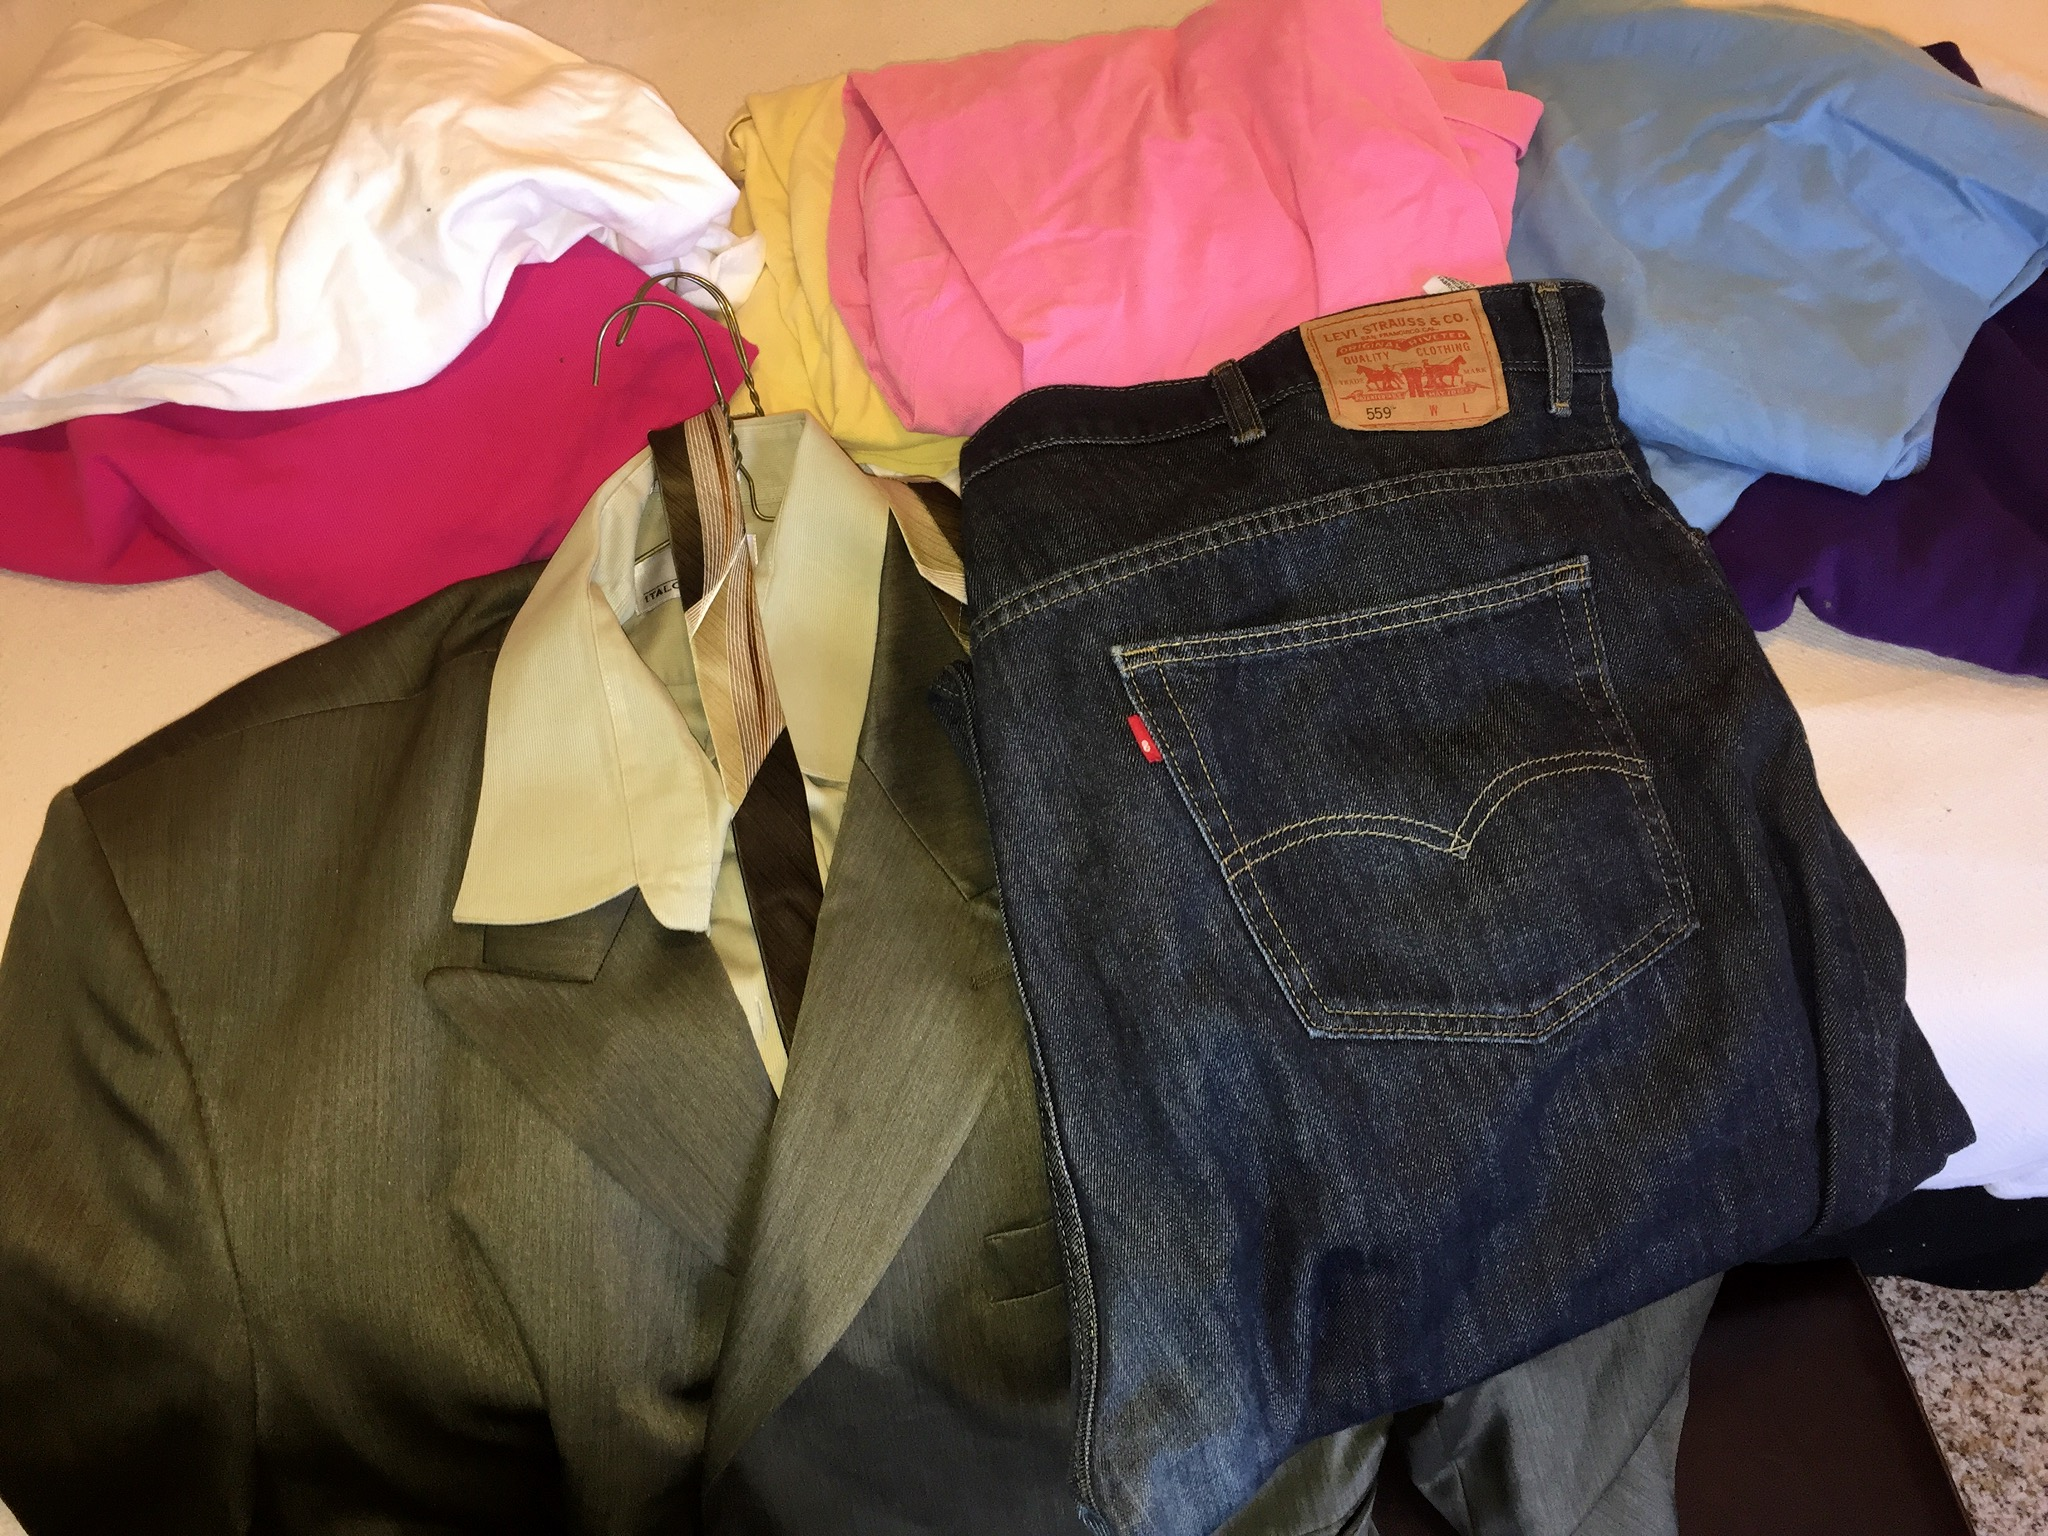 My closet spring cleaning donations